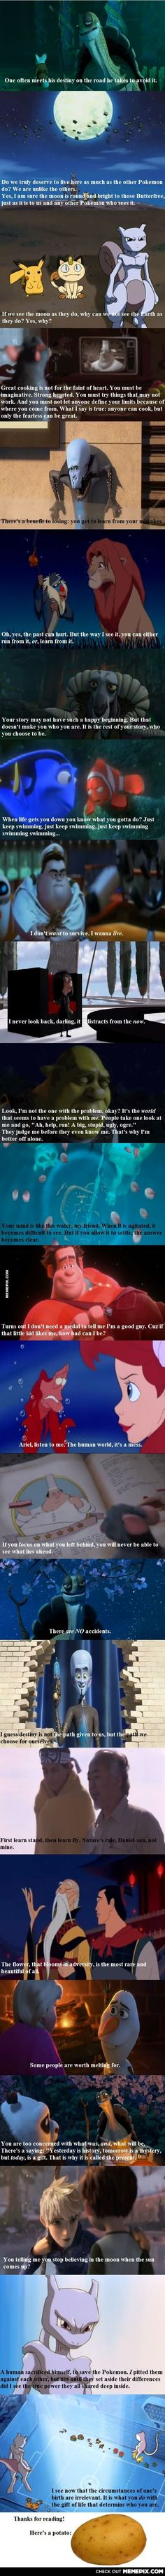 """Awesome quotes from what are apparently """"children's"""" movies."""